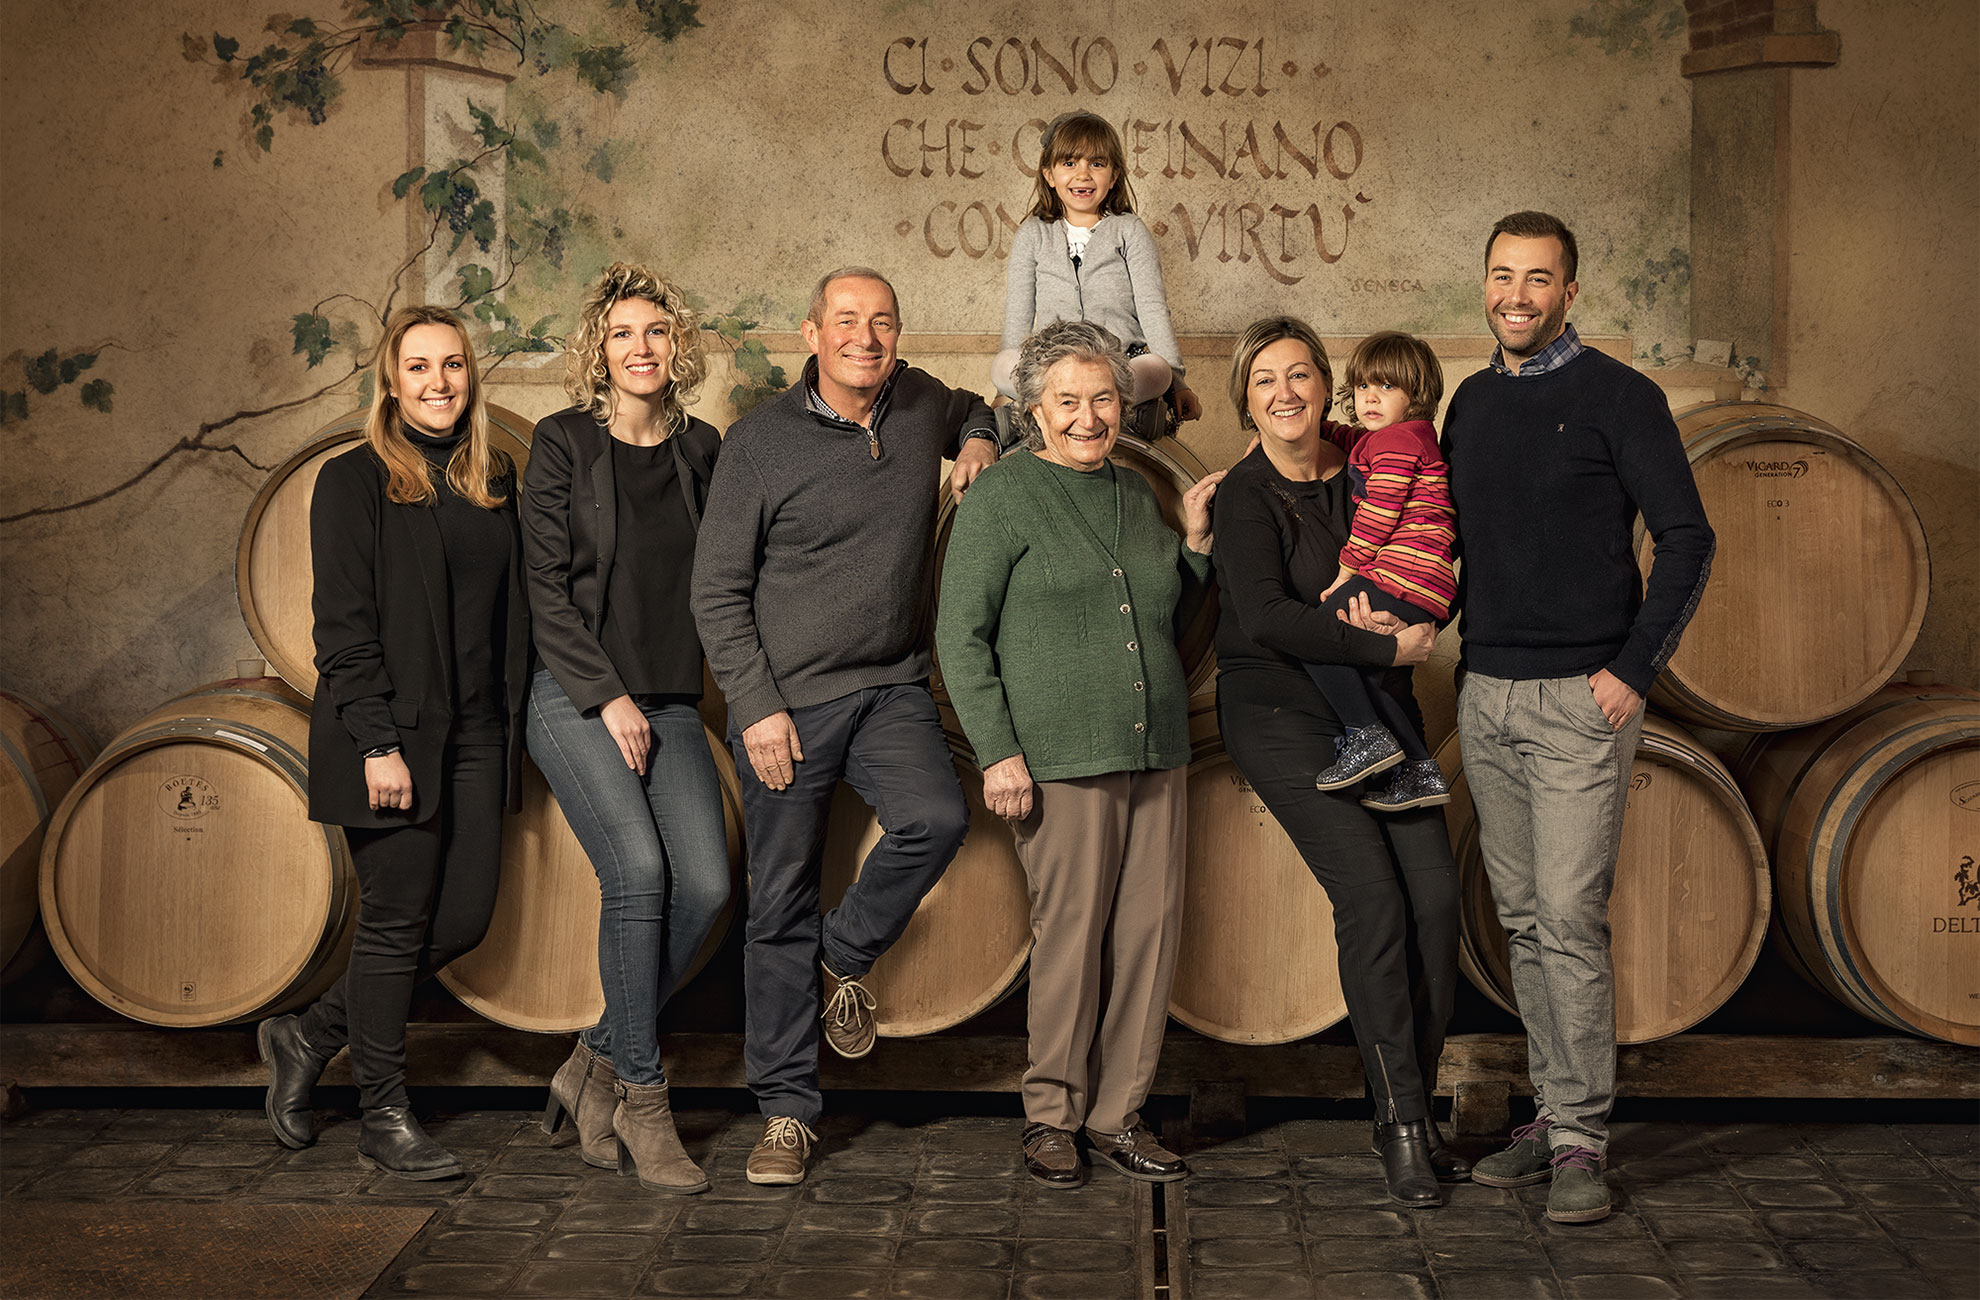 A great winemaking tradition with an eye to the future